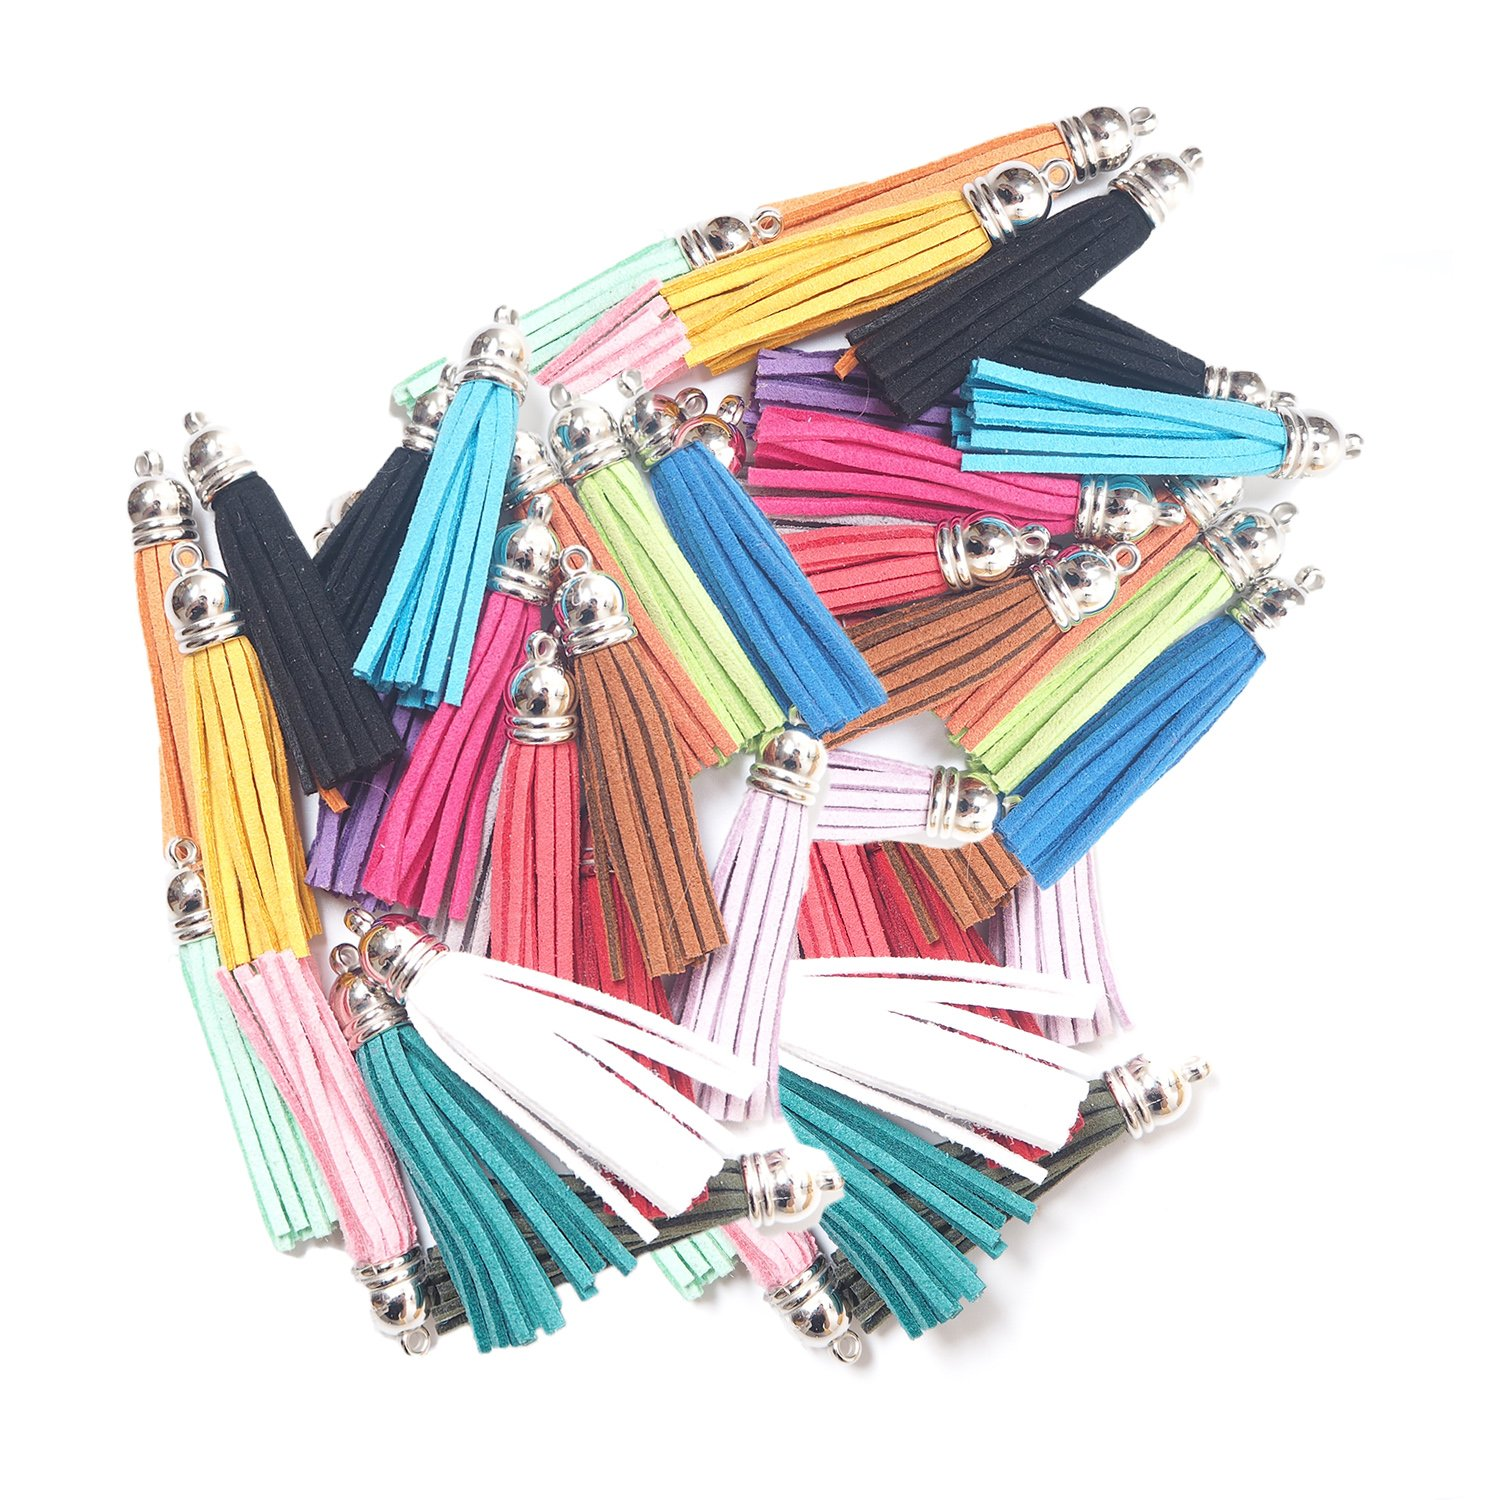 Cellphone Straps and DIY Accessories Vfond 100 Pieces 55 mm Leather Suede Tassel with Caps for Jewelry Making Findings